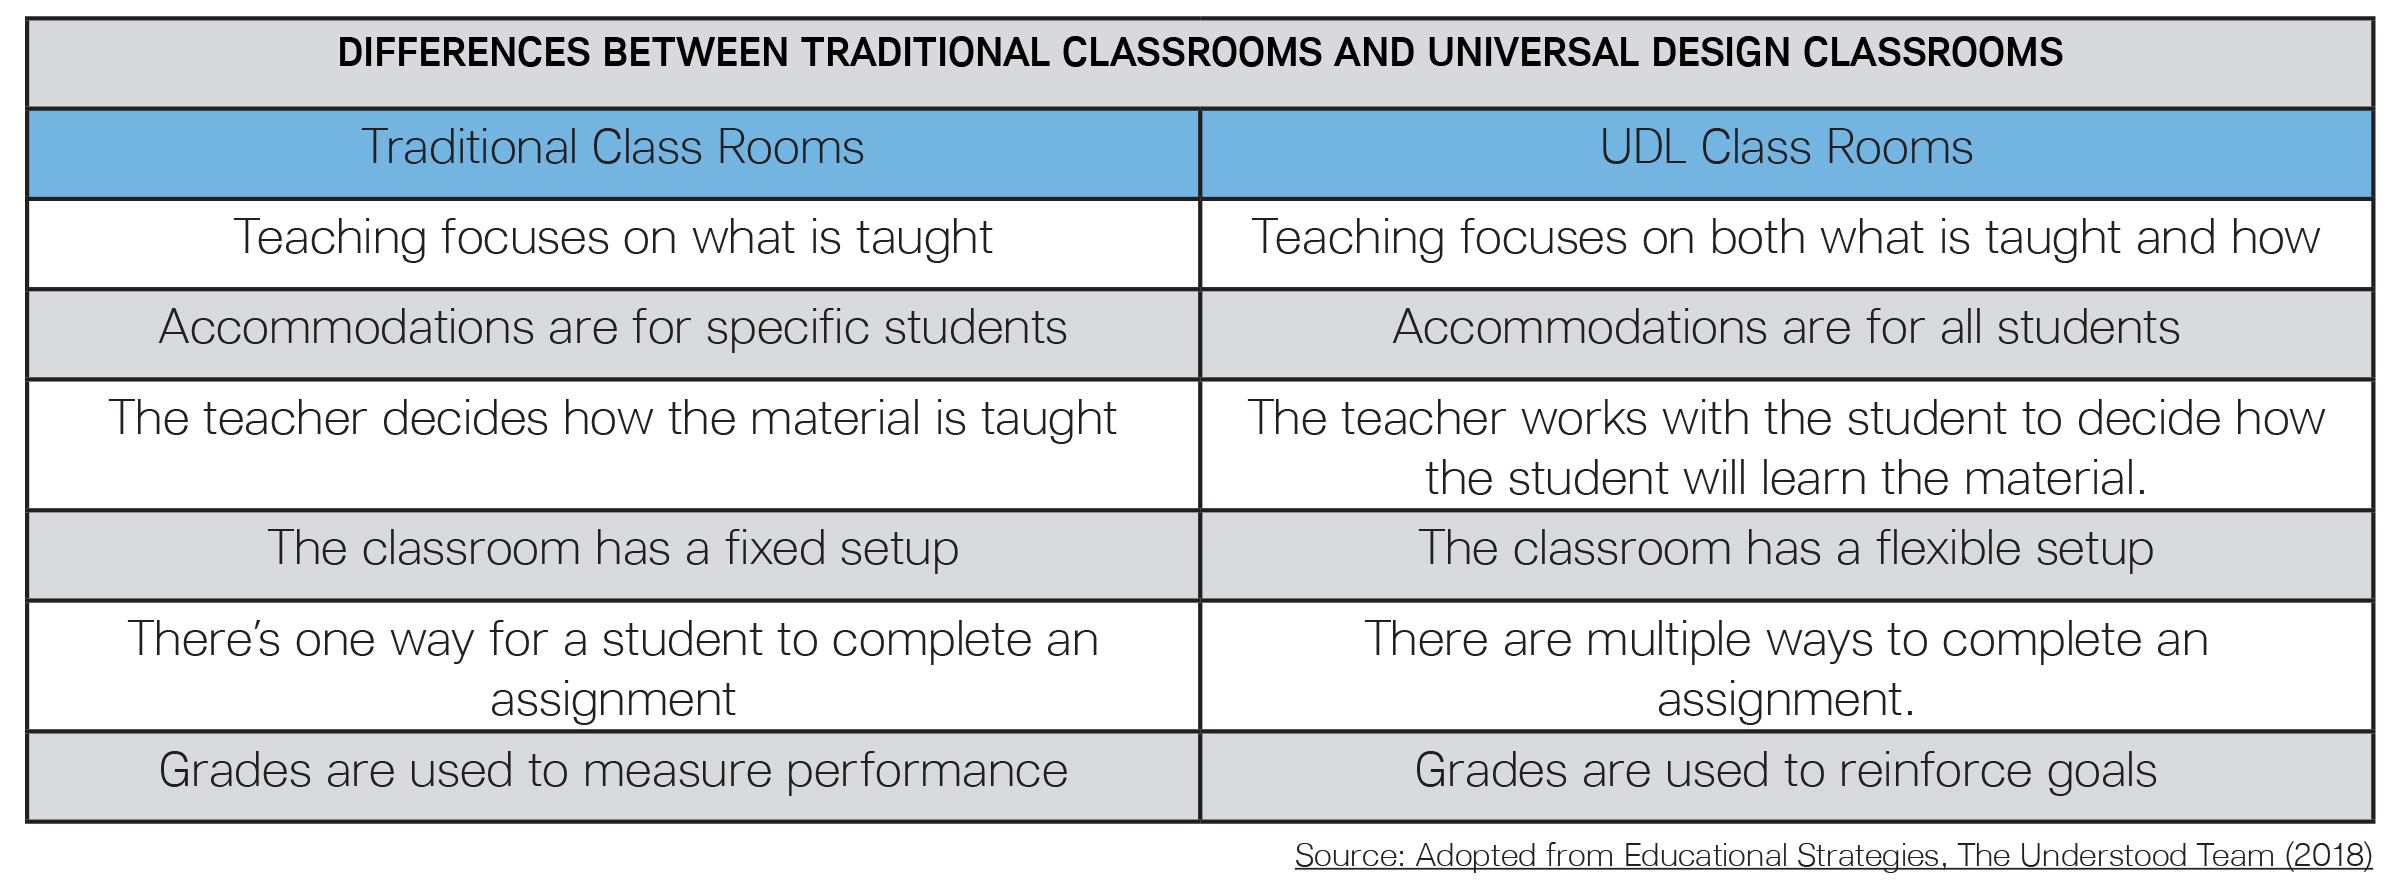 Universal Design For Learning: Fostering Neurodiversity, Equity, And Inclusivity Through Educational Technology